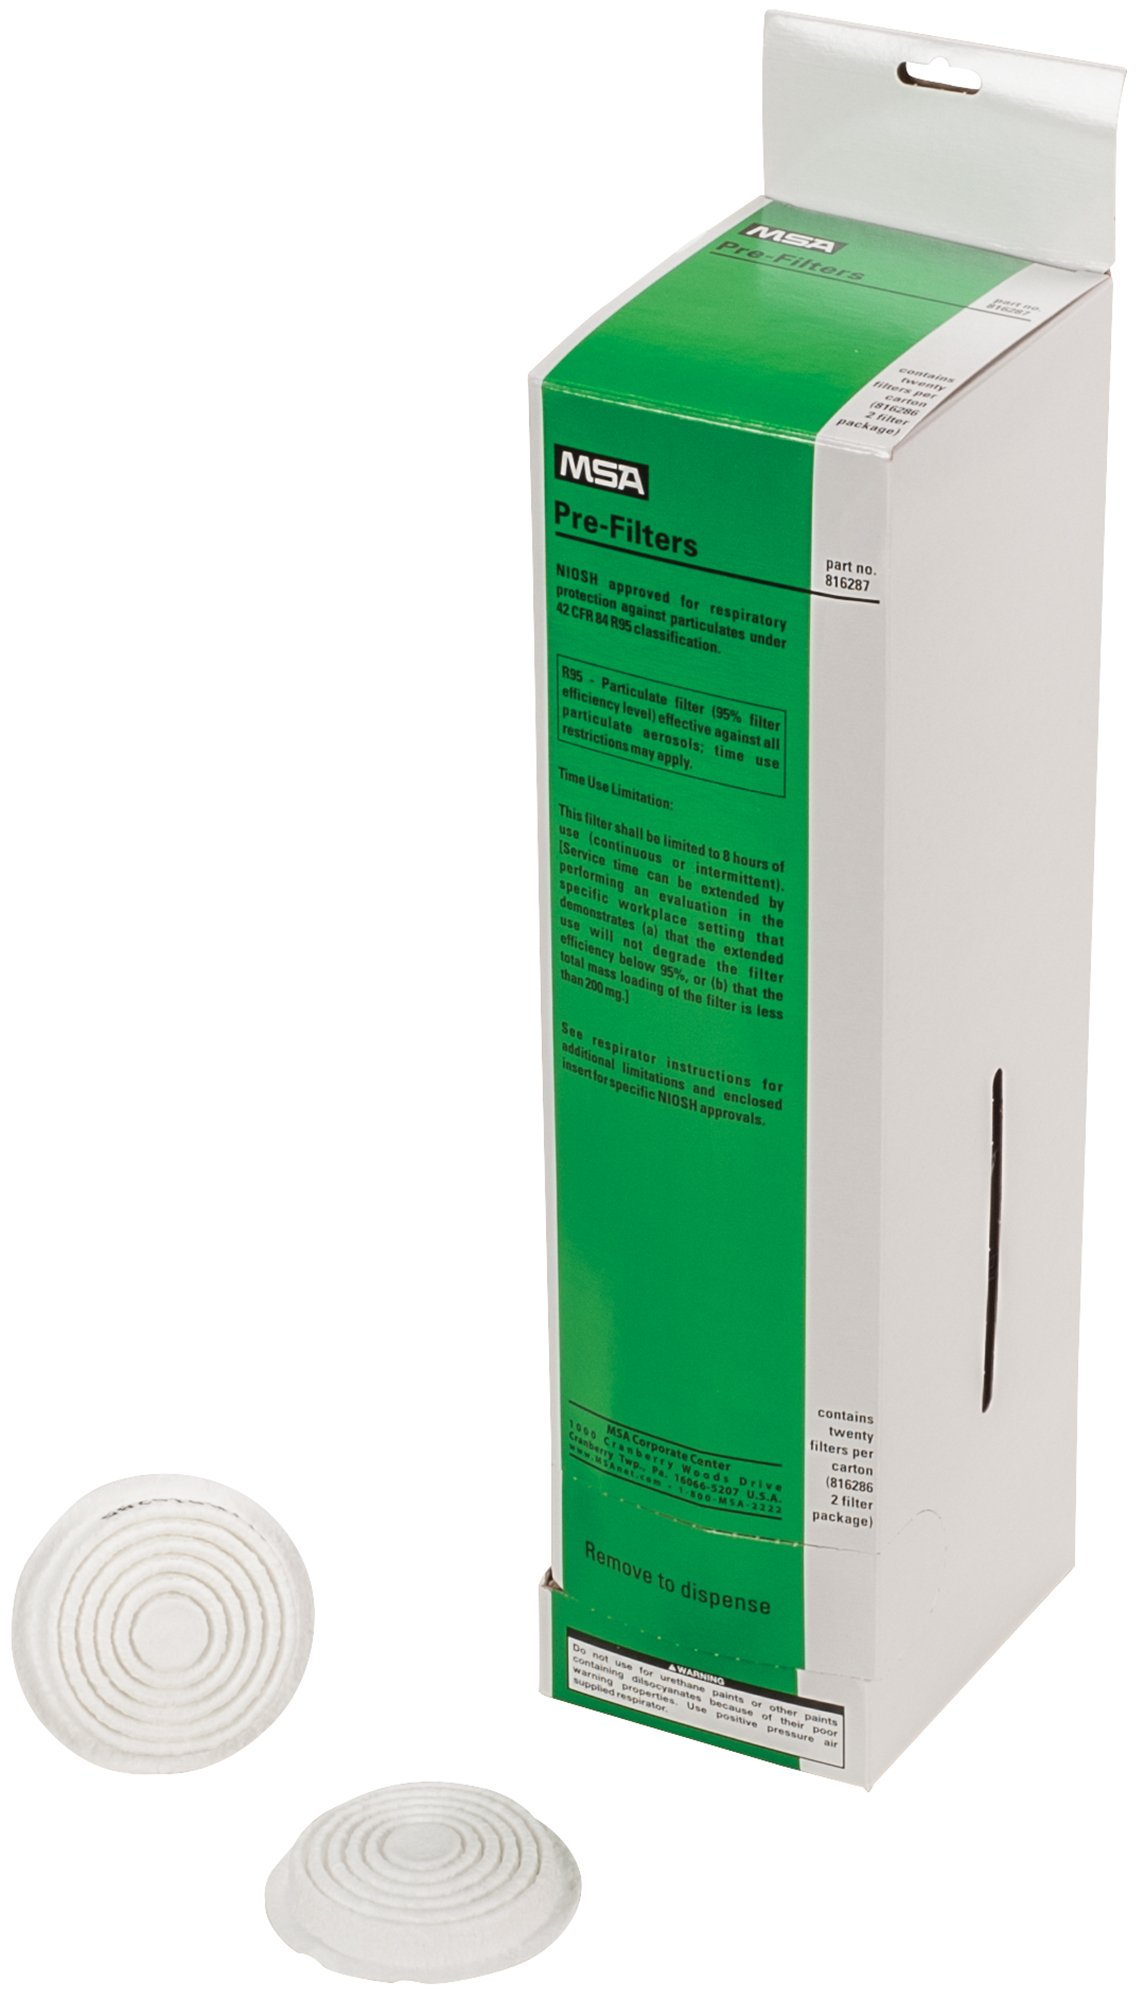 MSA 816287 R95 Pre-Filter for Comfo Ultra-Twin Respirators (Pack of 20)